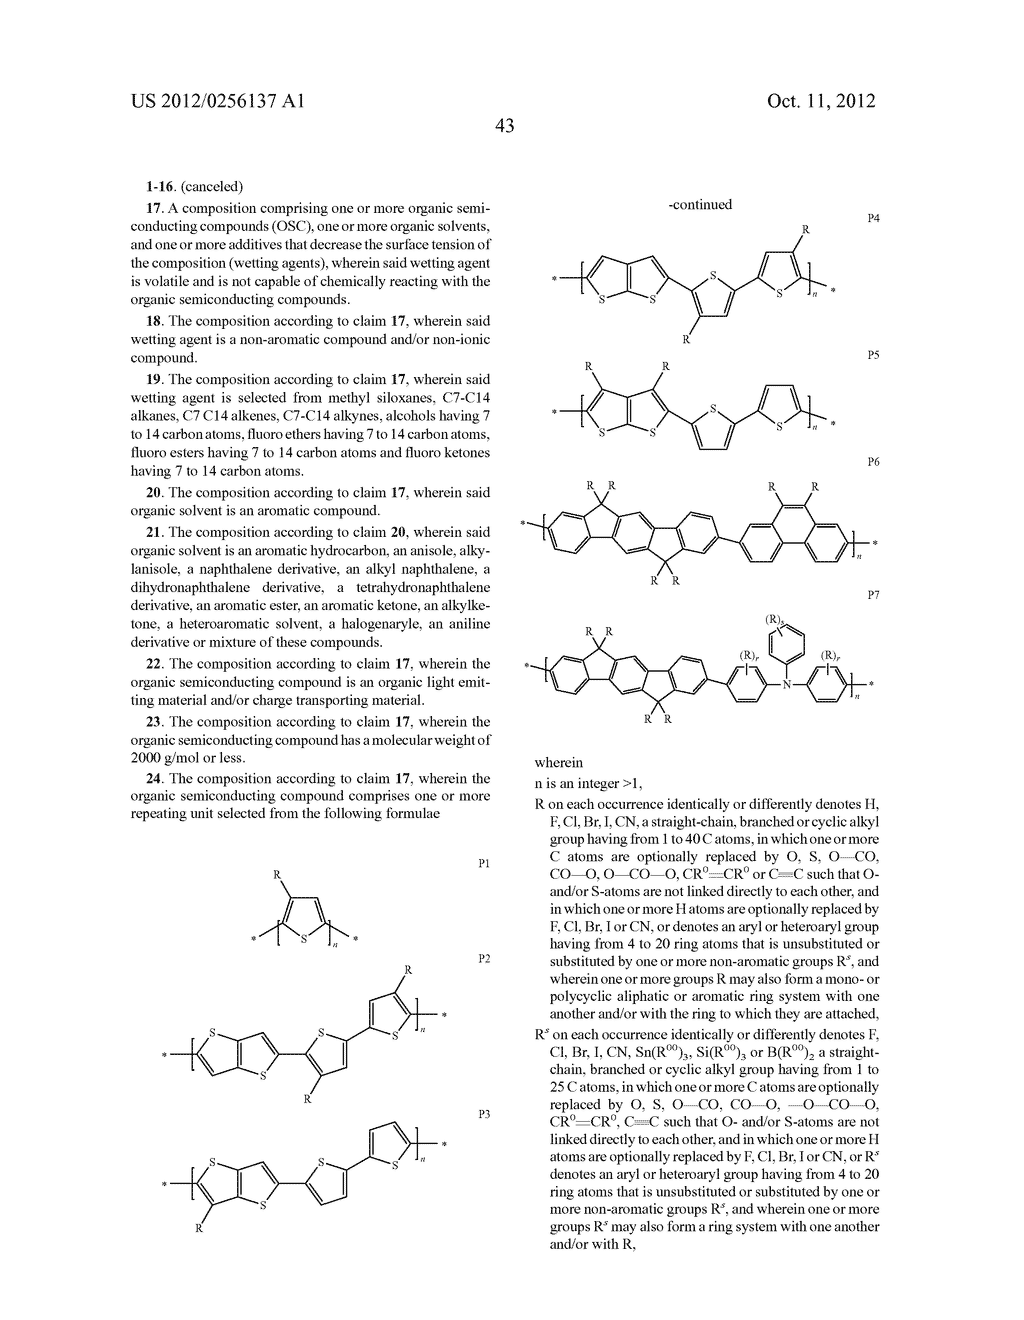 COMPOSITIONS COMPRISING ORGANIC SEMICONDUCTING COMPOUNDS - diagram, schematic, and image 54